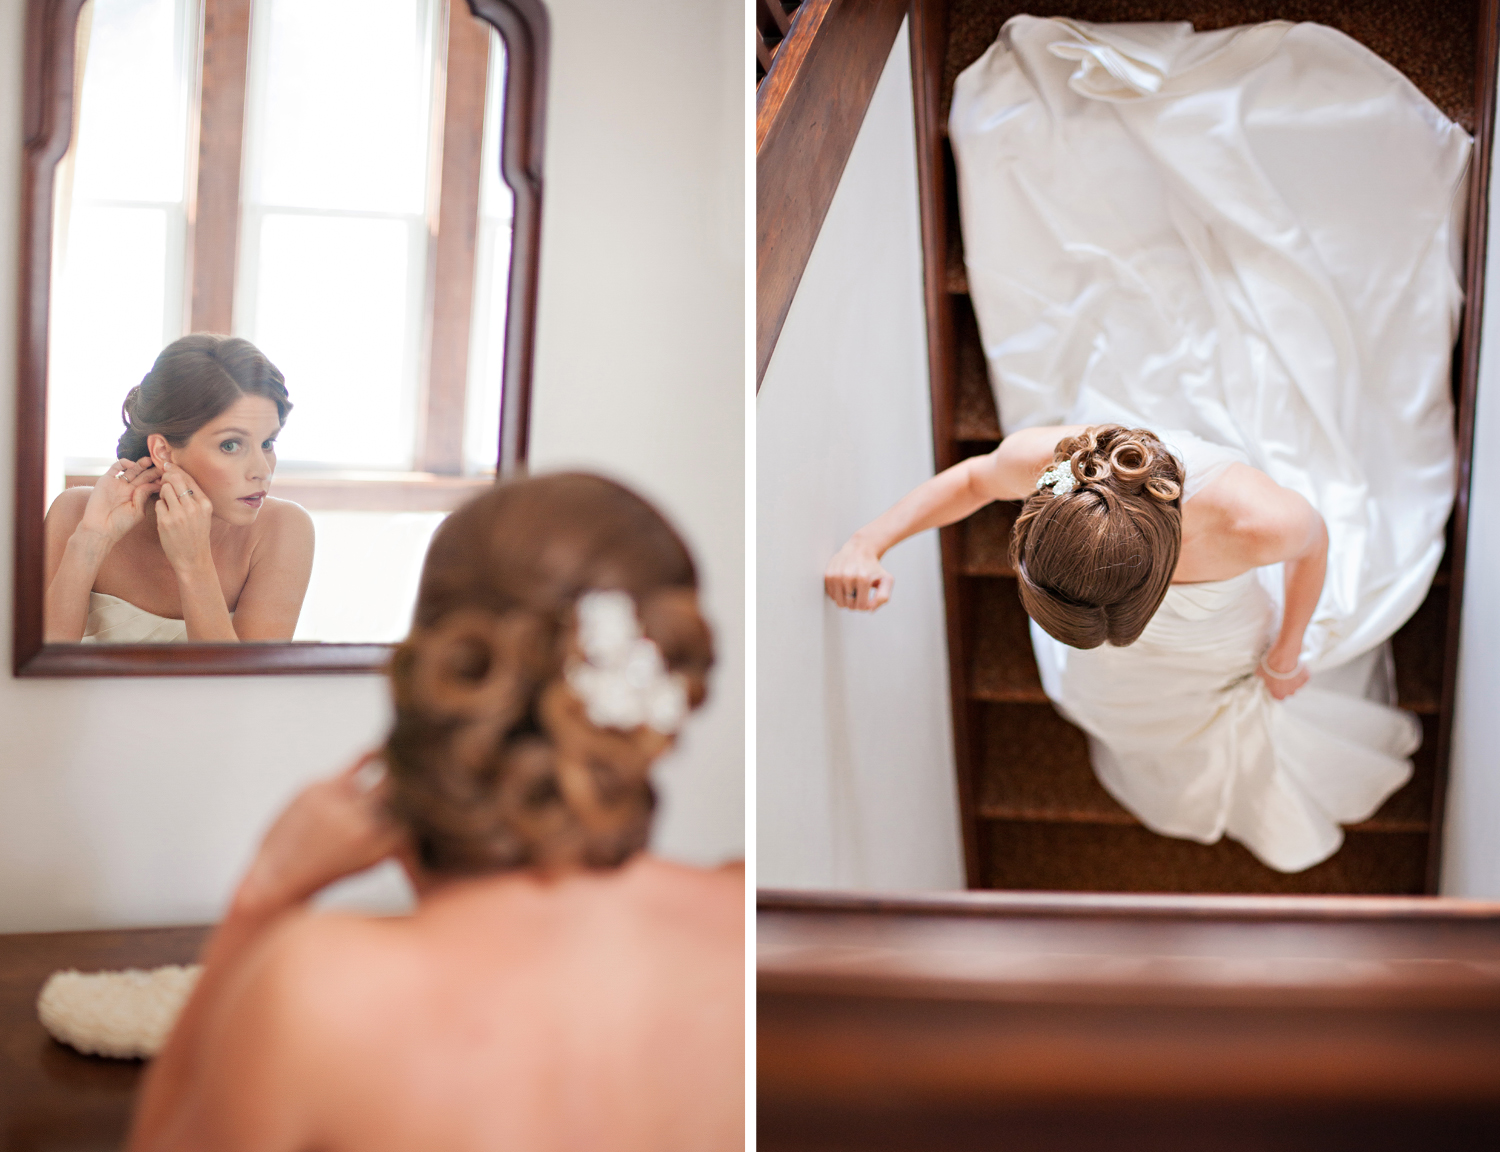 St Marys Ohio, classic wedding photography, getting ready